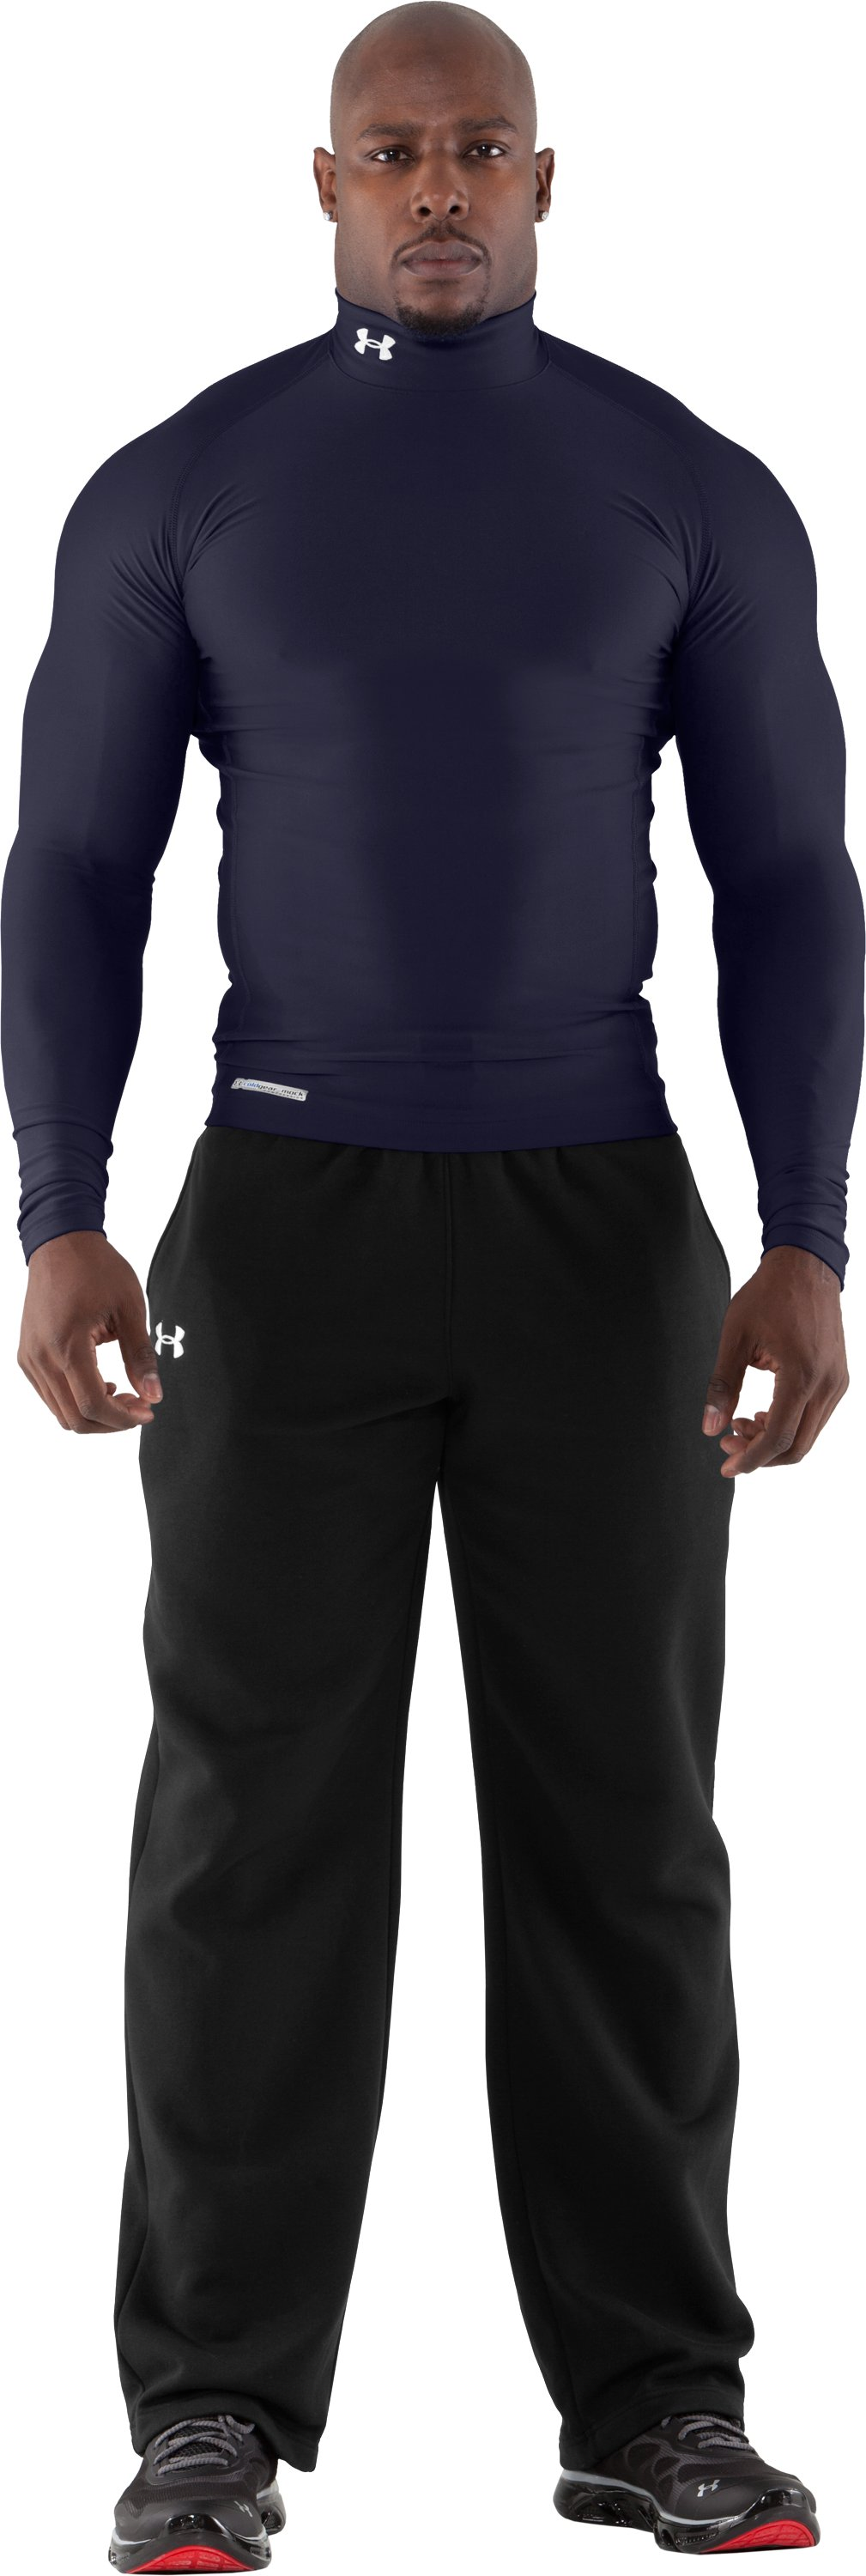 Men's ColdGear® Evo Long Sleeve Compression Mock, Midnight Navy, zoomed image